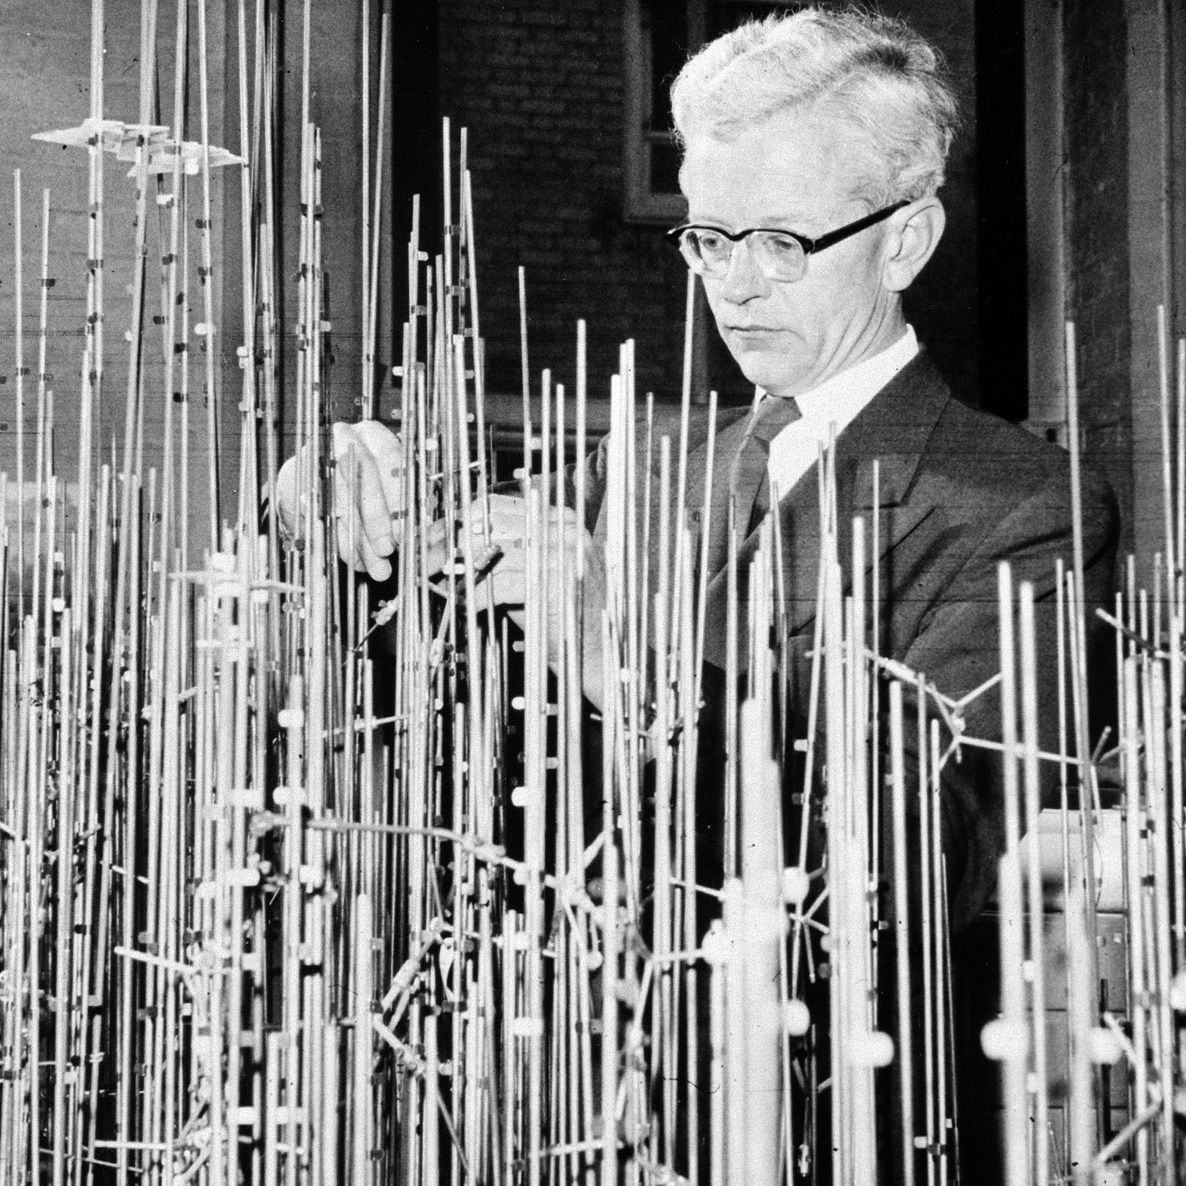 Sir John Kendall was the first to determine the 3D structure of a protein, but building an accurate model required sculptures that would take up a room.